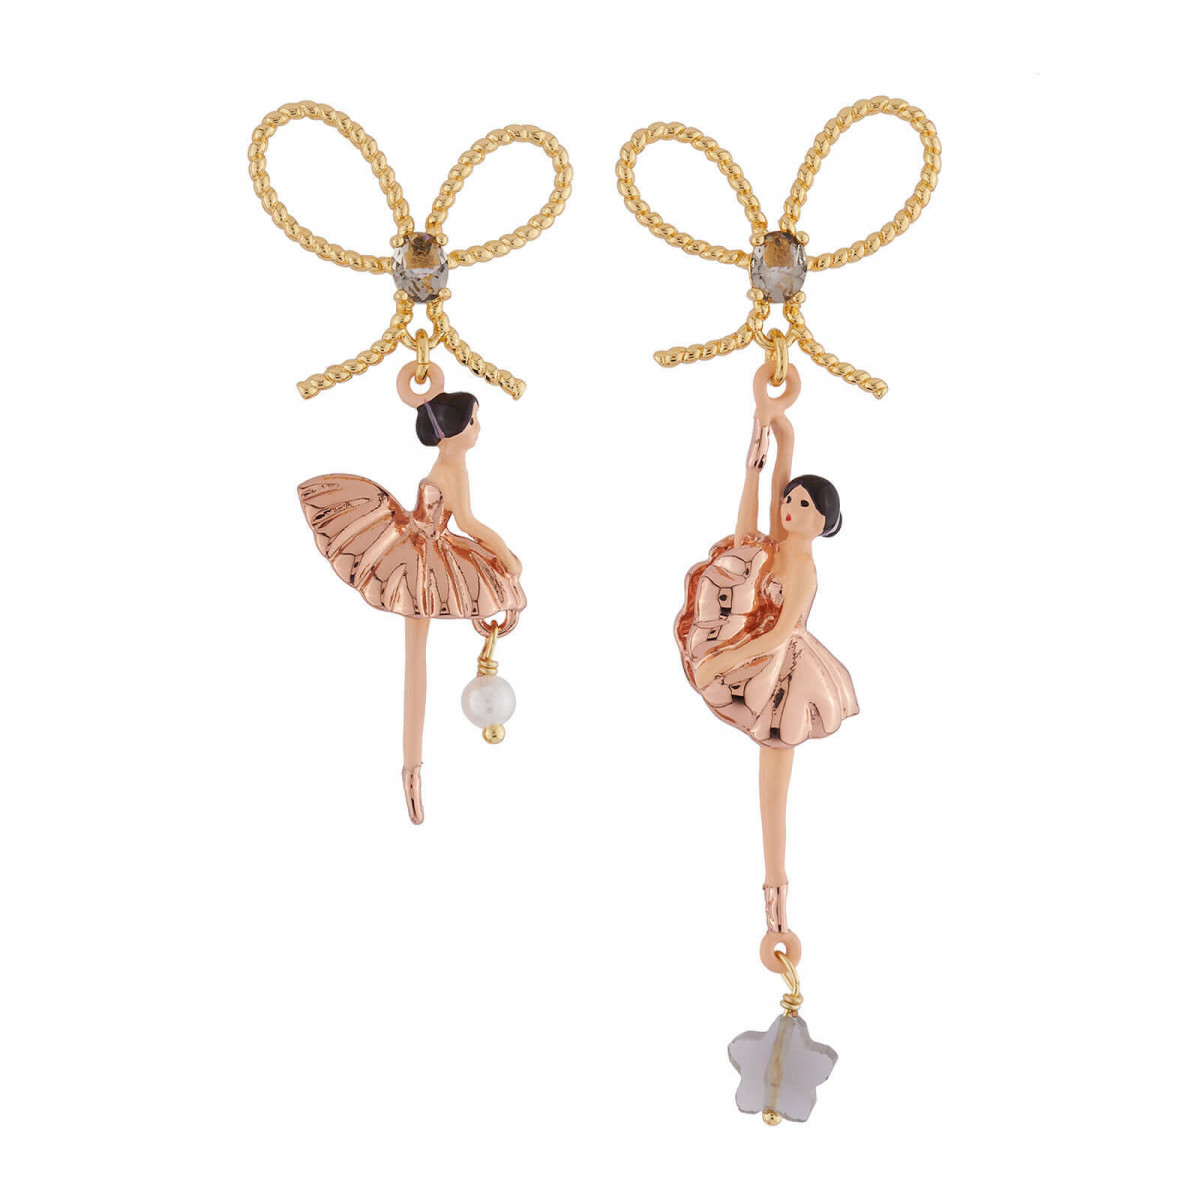 Discover Our Pink Gold Asymmetrical Ballerina Earrings This Piece Of Jewellery Is Made Up Ballerinas Delicately Hand Enamelled Br In Pure